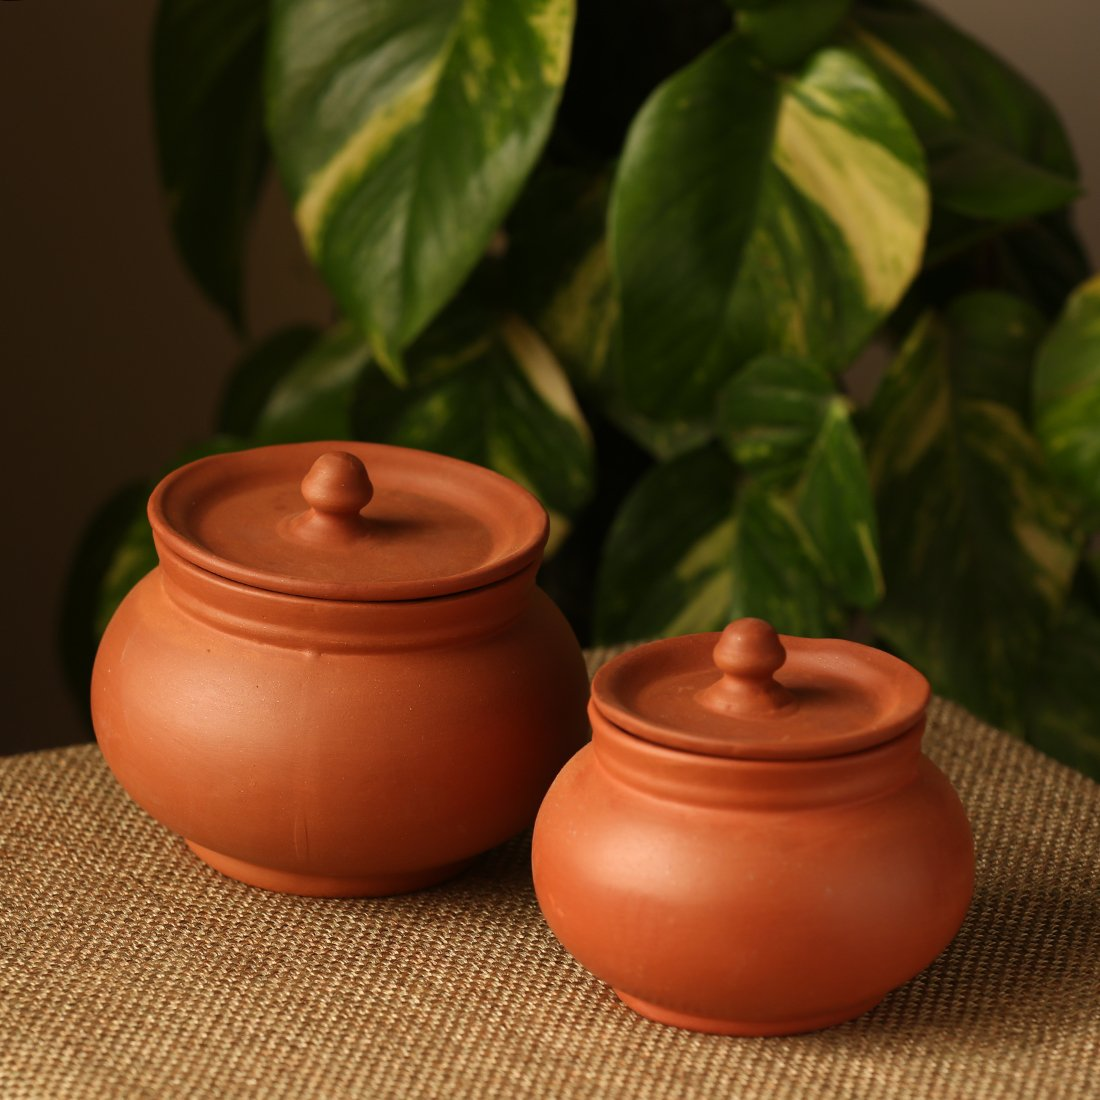 Moorni Handmade Earthen Clay Serving Handis With Lids (Set Of 2) - EL-005-516